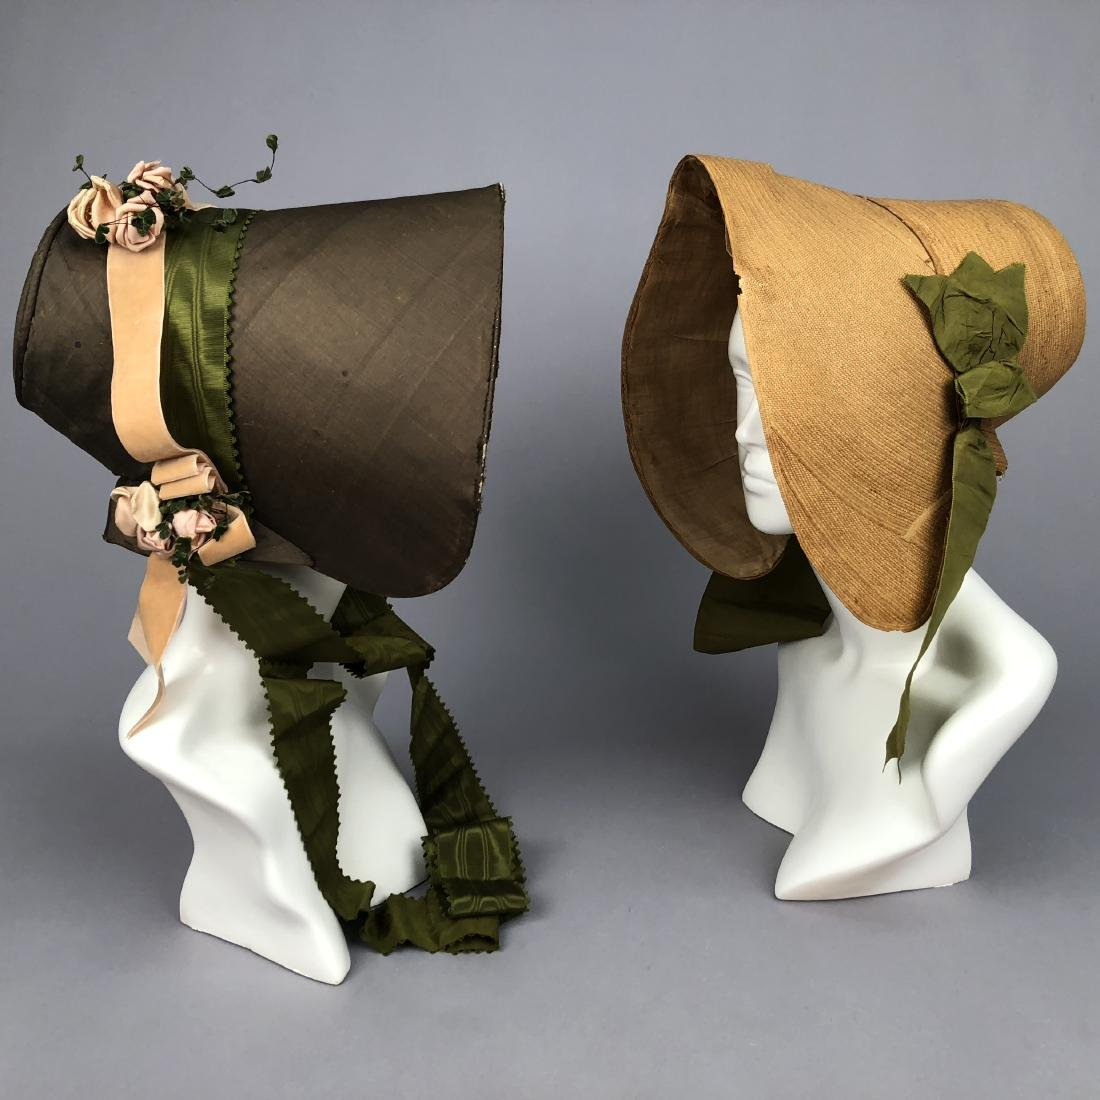 TWO BONNETS with RIBBON TRIM, 1830s